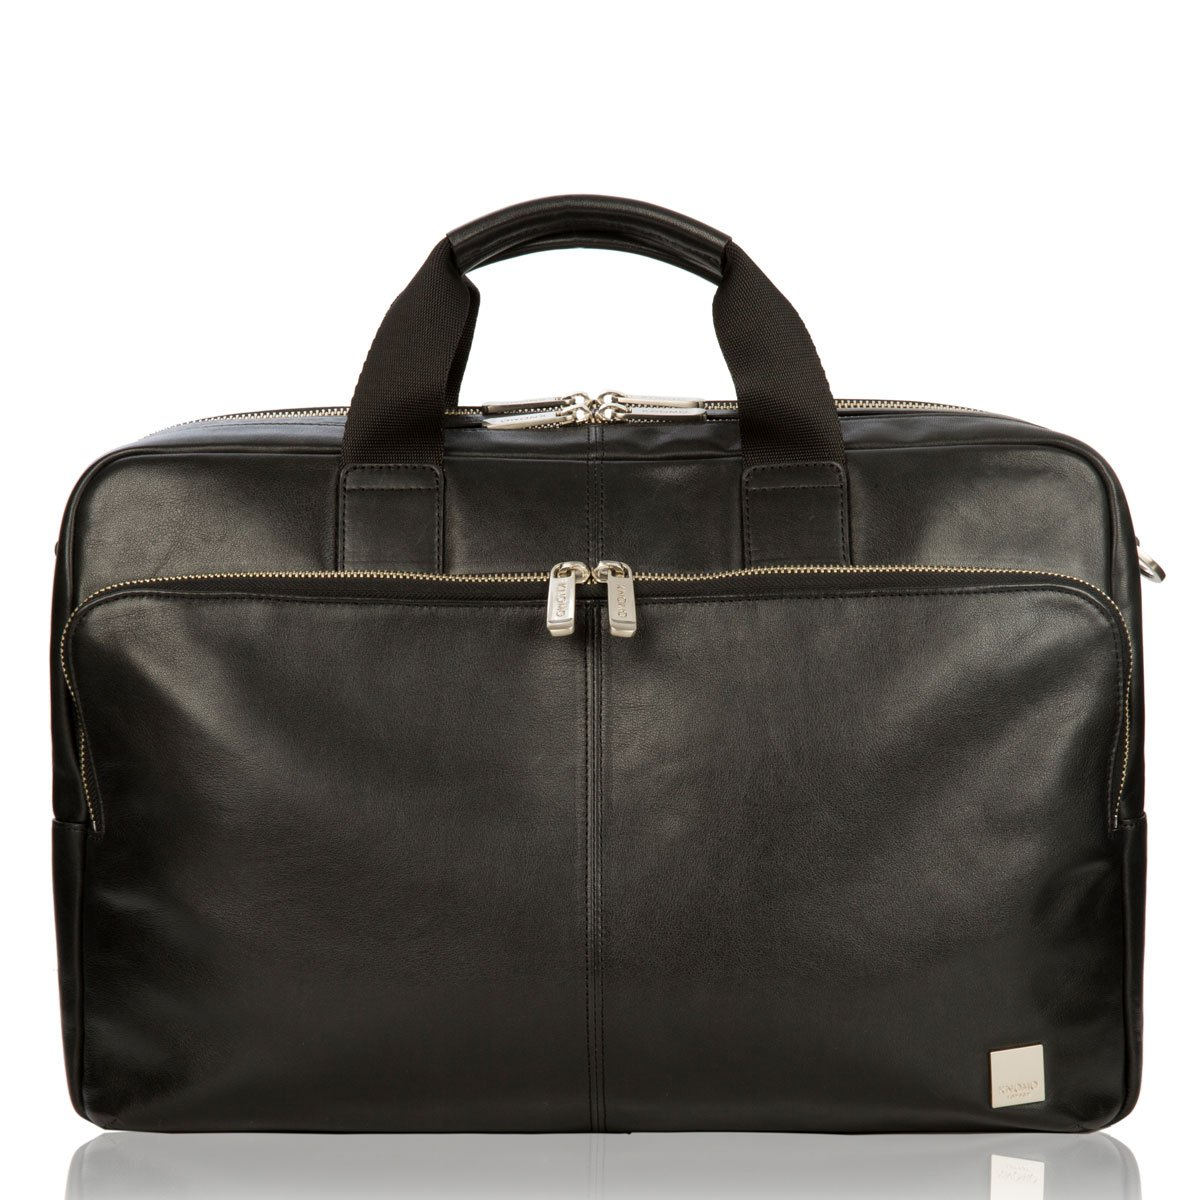 Black Knomo Luggage Amesbury Full Leather Double Zip Brief 15-inch